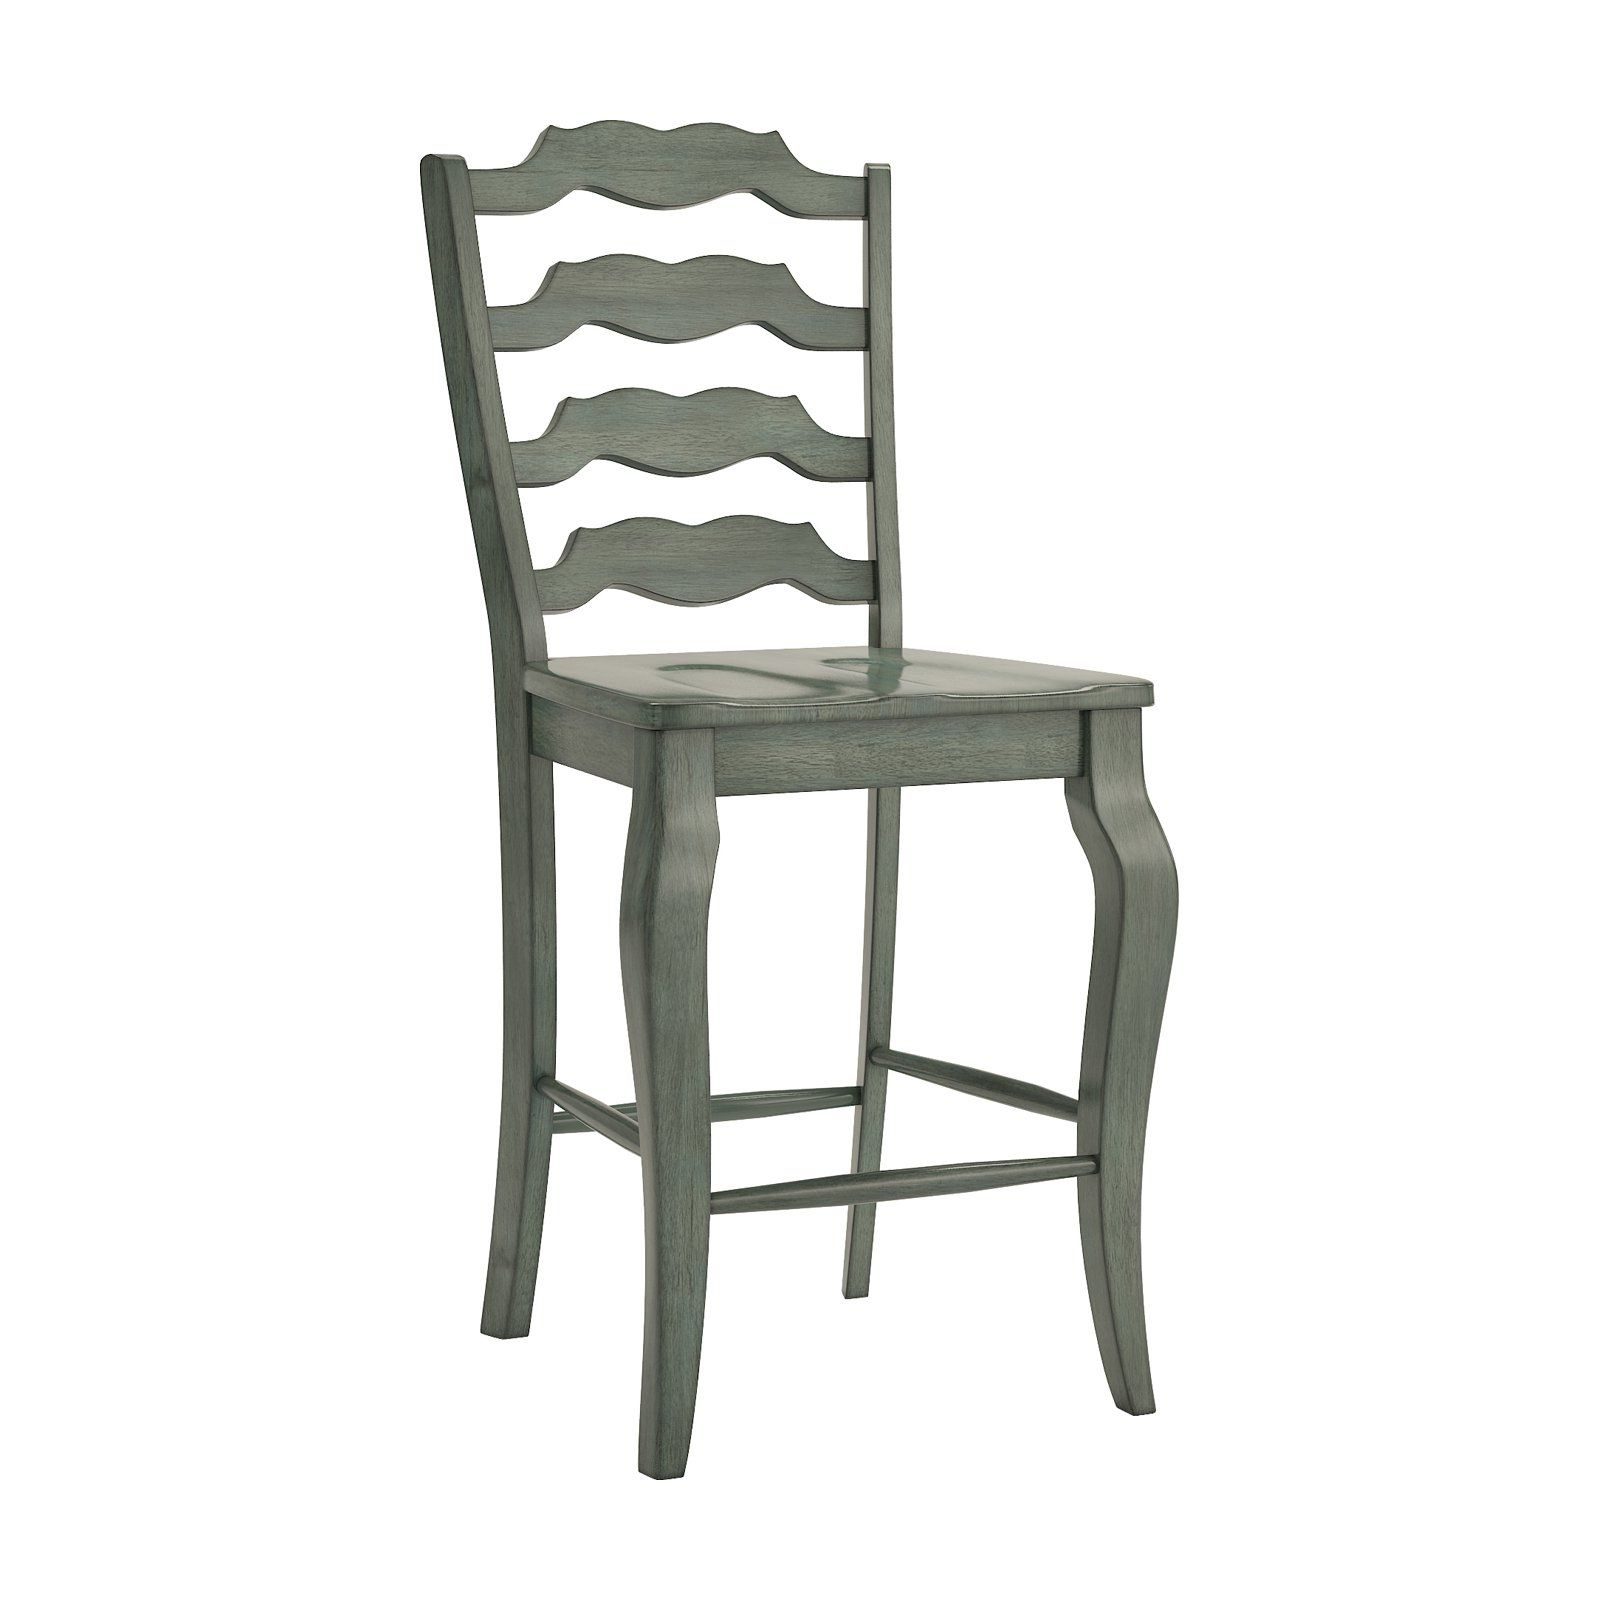 Weston Home Farmhouse Vintage French Ladder Back 24 in